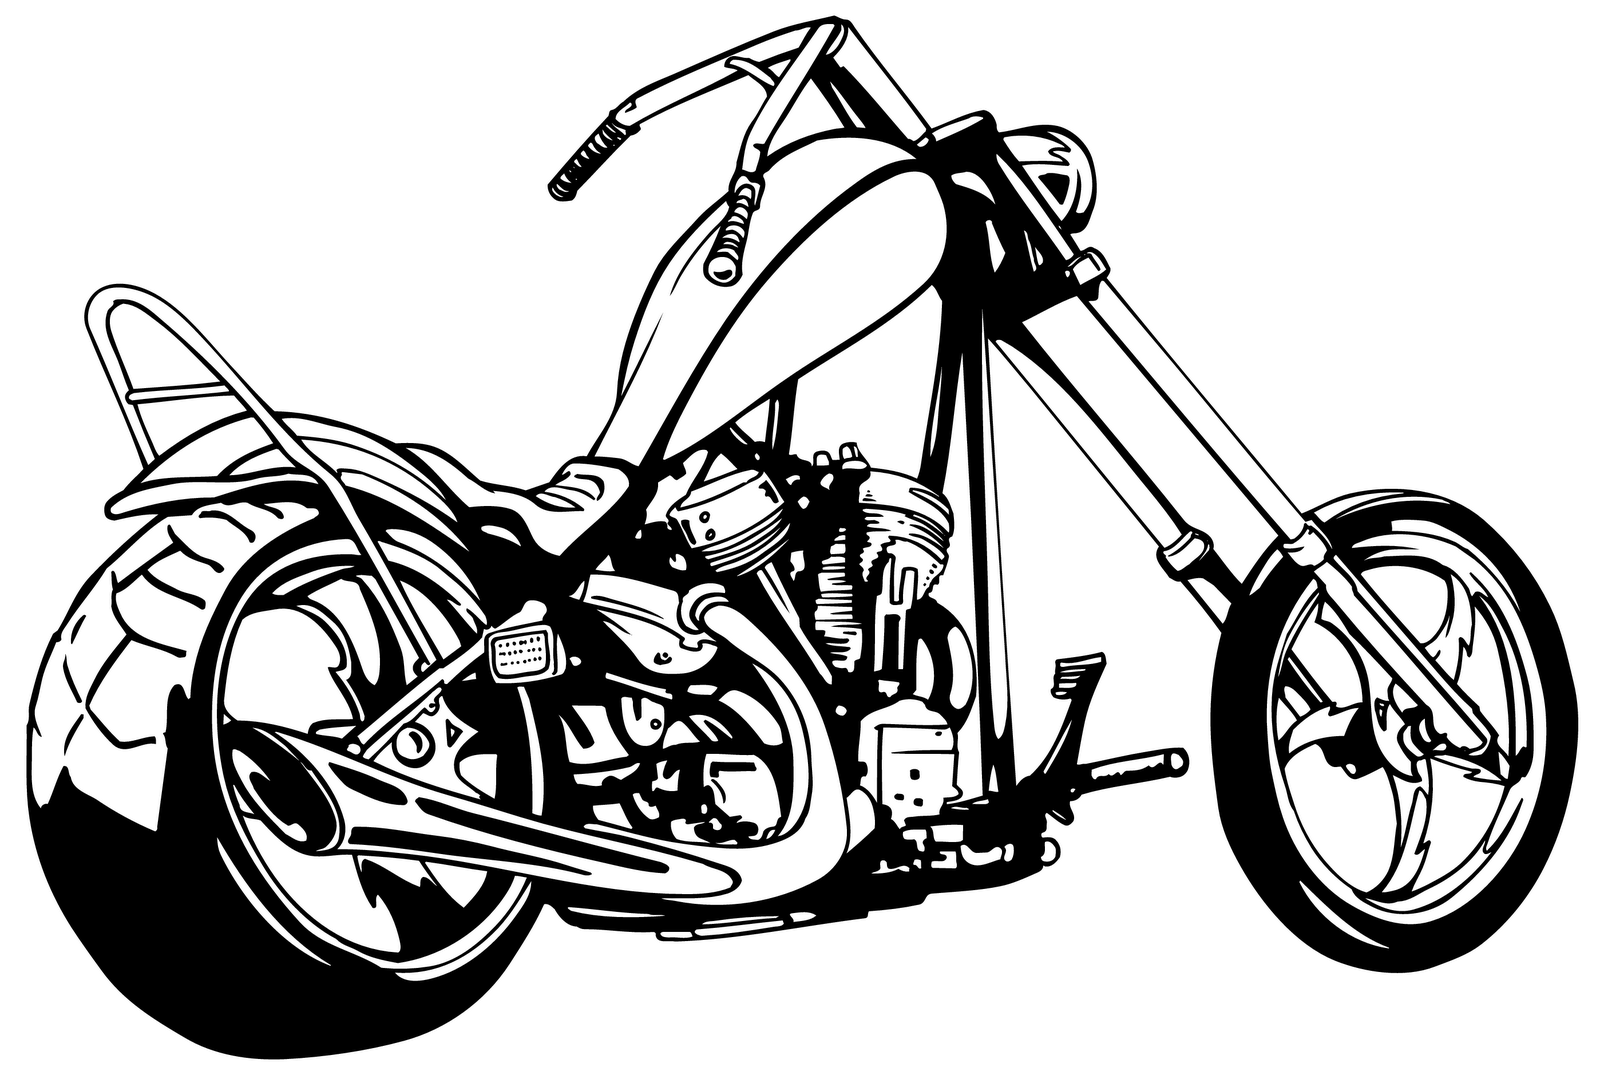 Vintage motorcycle clipart #19